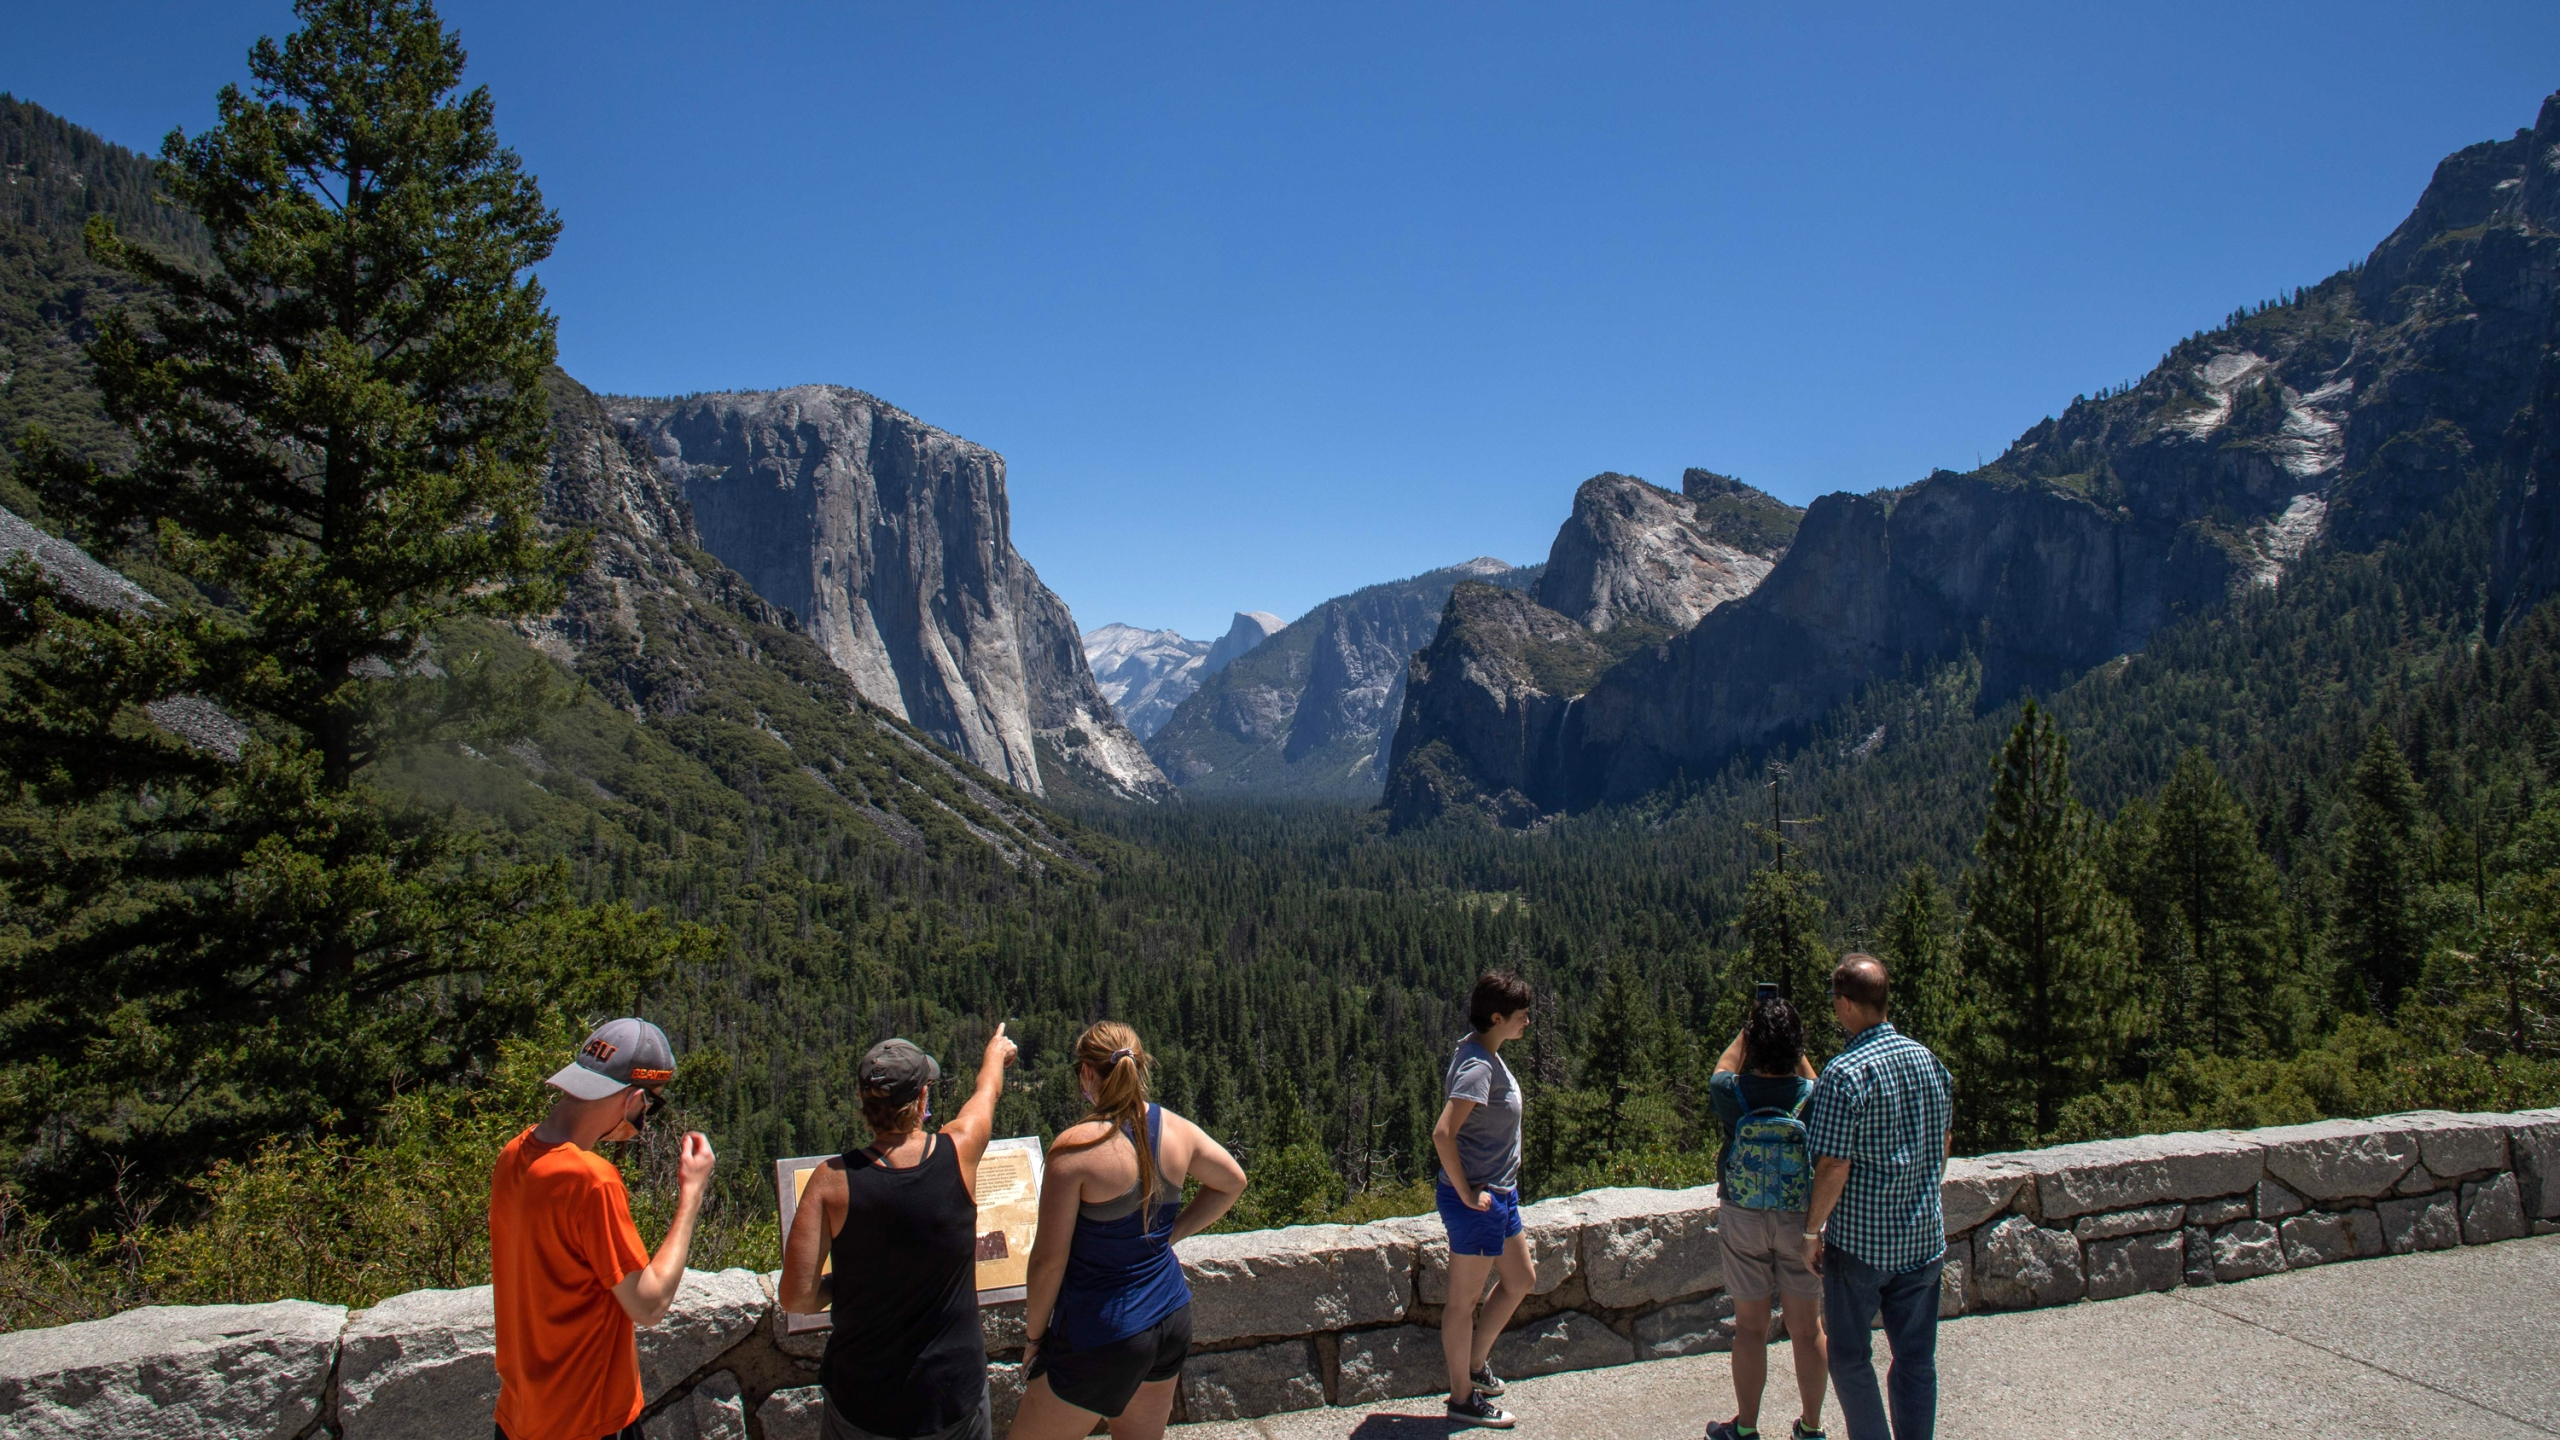 Visitors walk to the Tunnel View lookout in Yosemite Valley at Yosemite National Park on July 08, 2020. (APU GOMES/AFP via Getty Images)